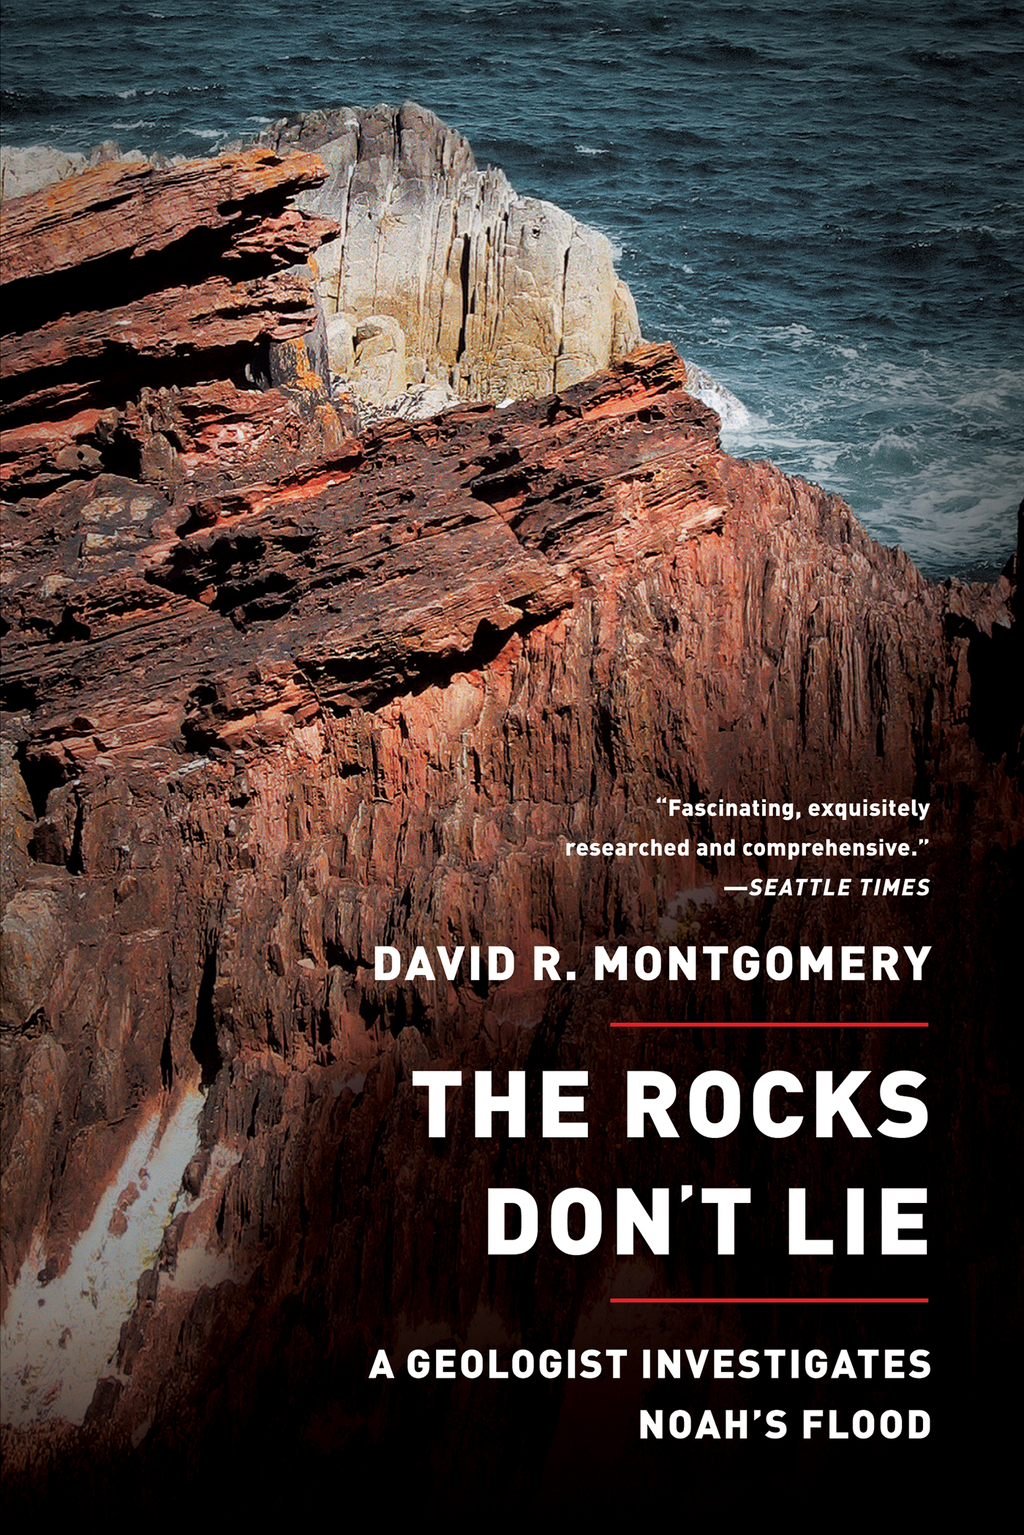 The Rocks Don't Lie: A Geologist Investigates Noah's Flood By: David R. Montgomery